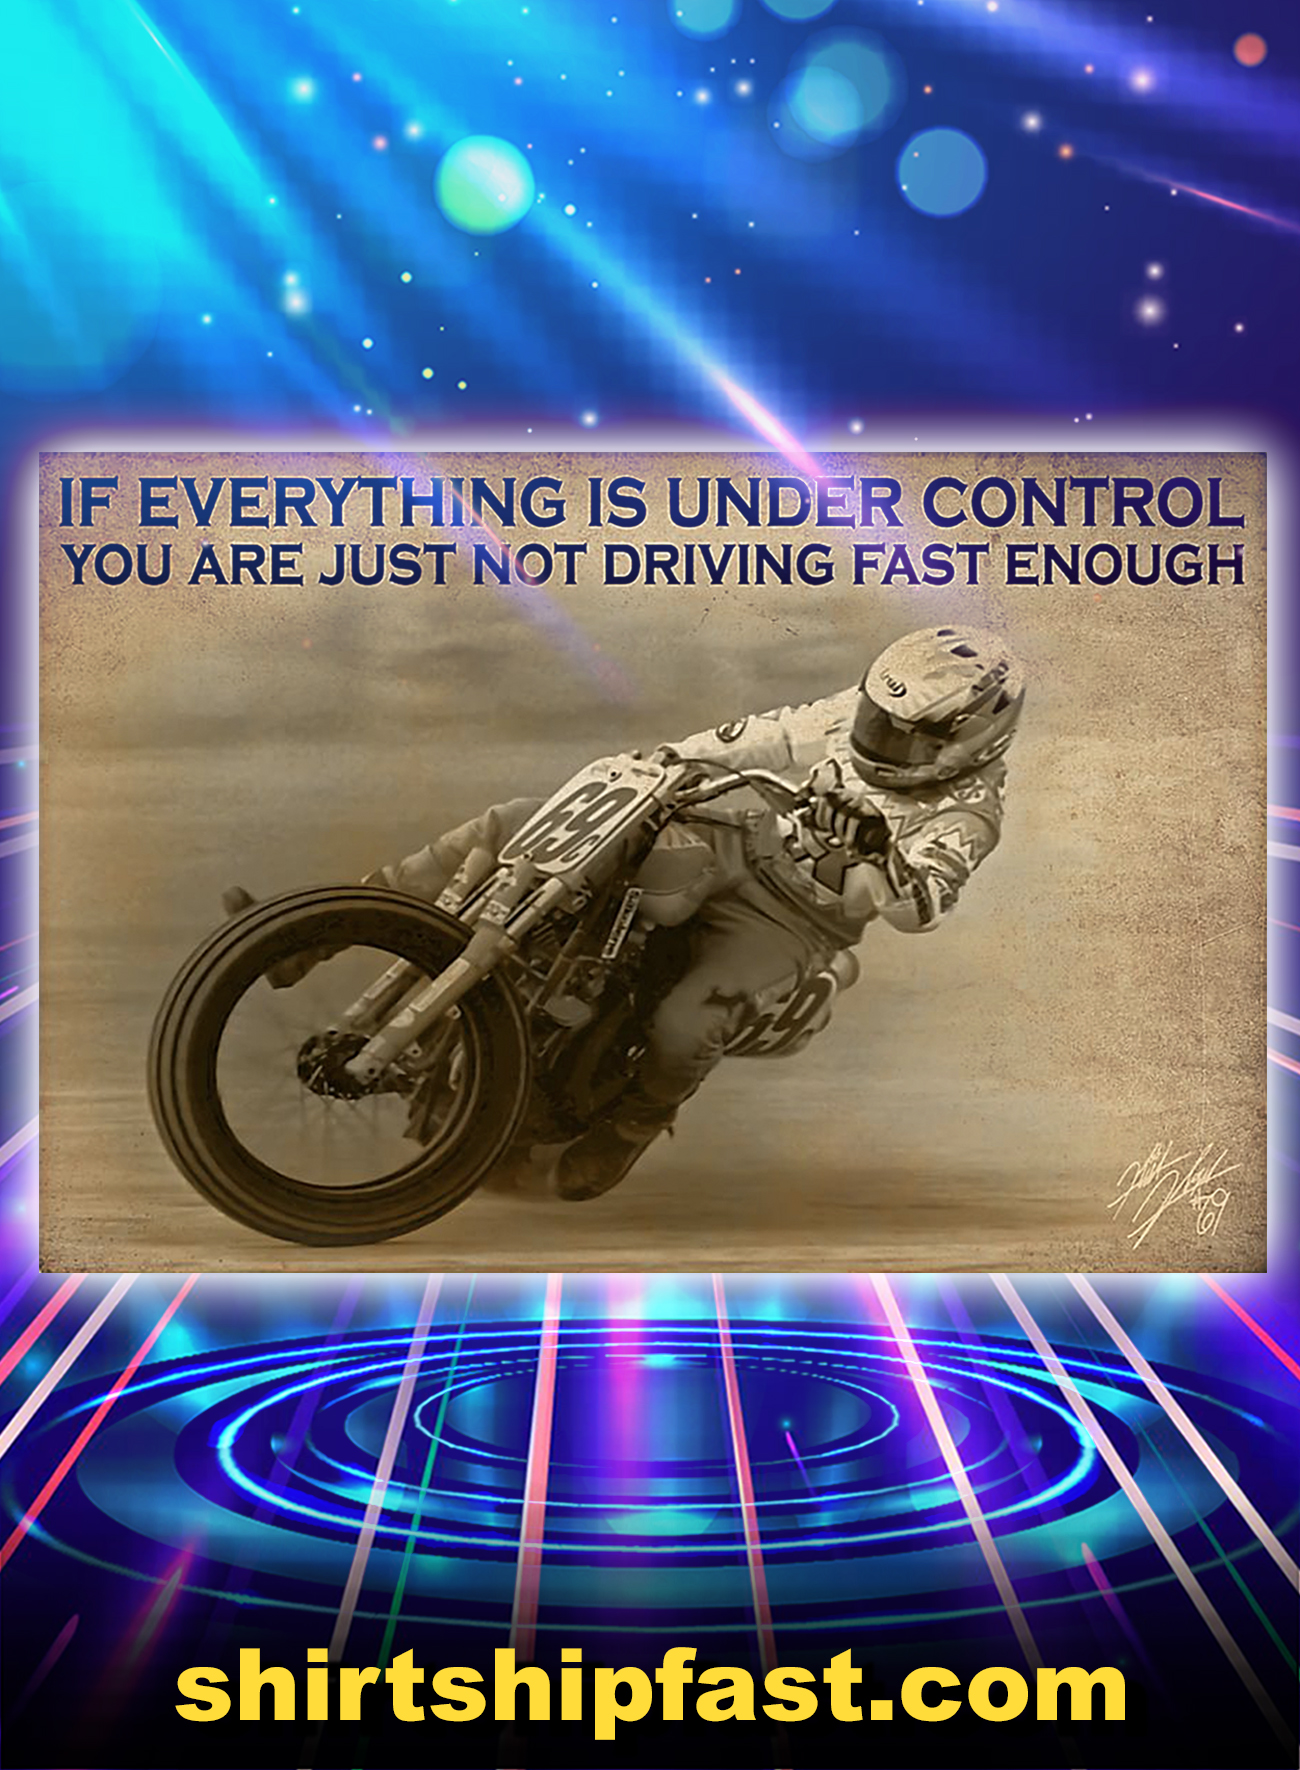 Motor racing if everything is under control you are just not driving fast enough poster - A1